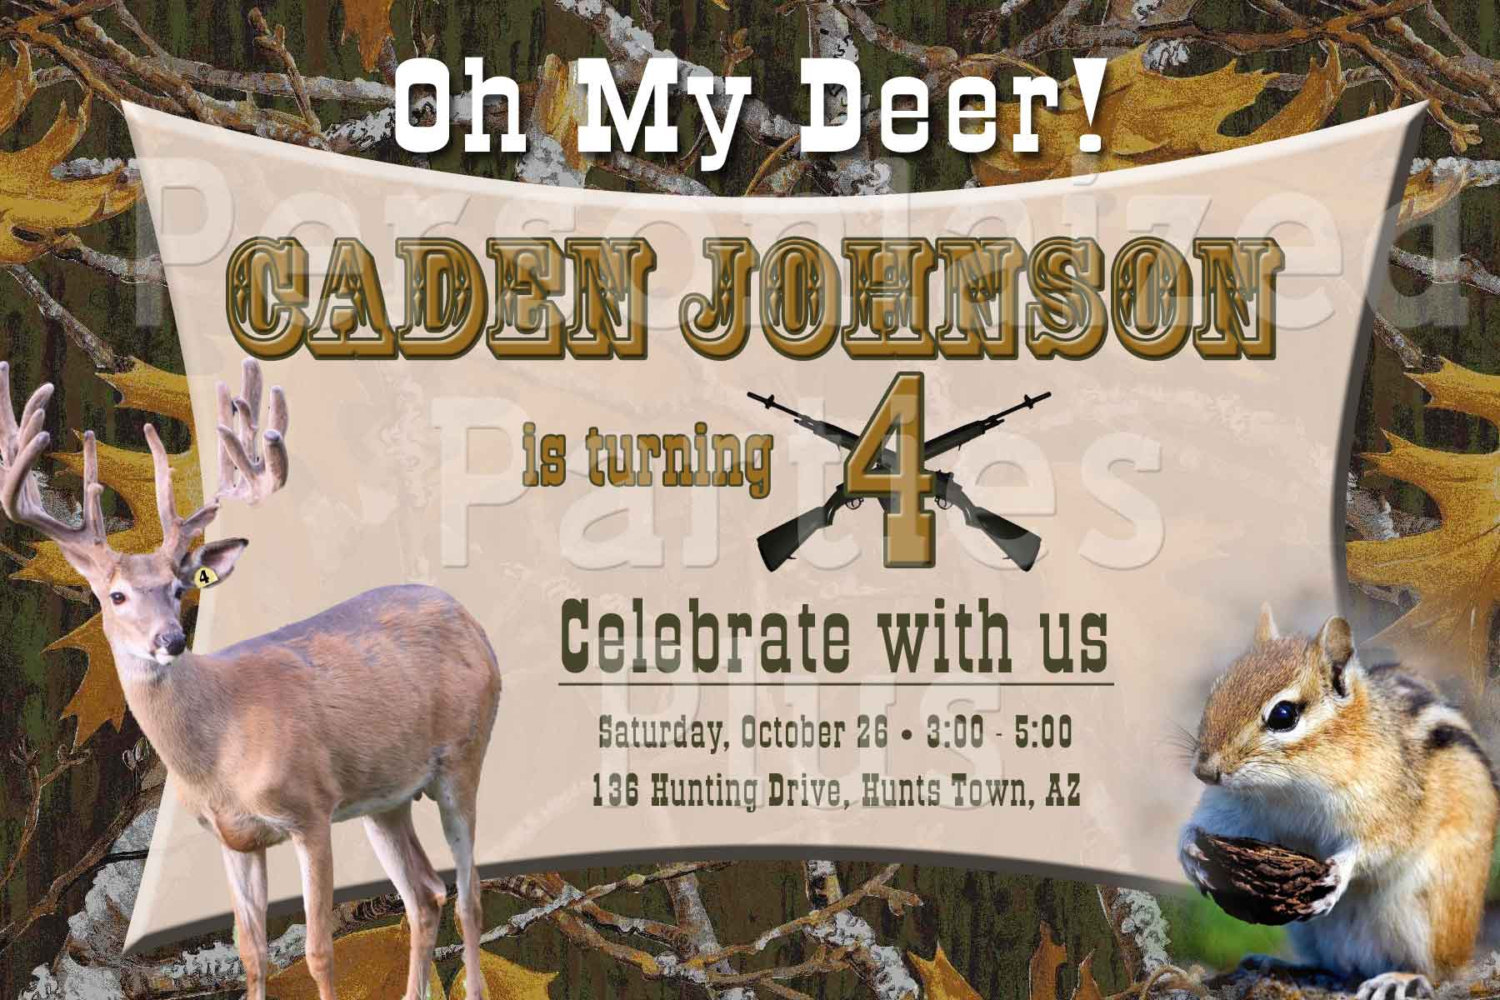 Deer hunting birthday invitation that has a camouflage background